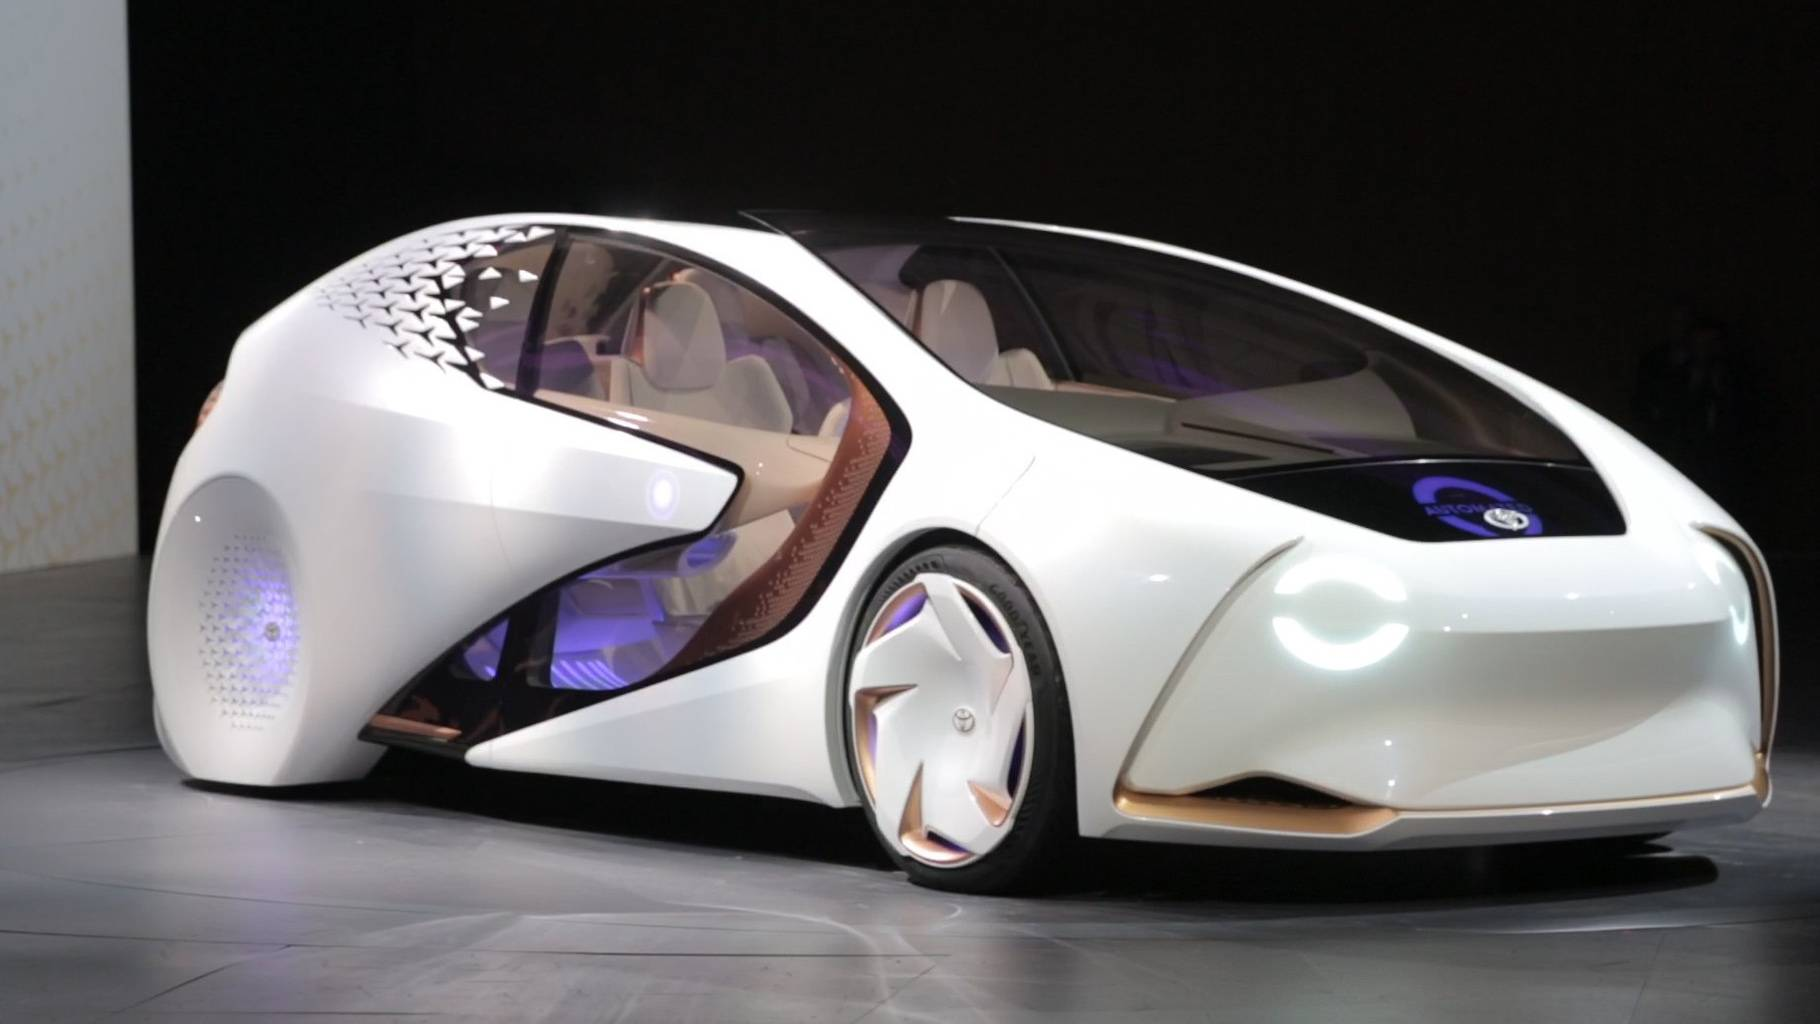 Here S What The Coolest Concept Cars Of The Future Look Like